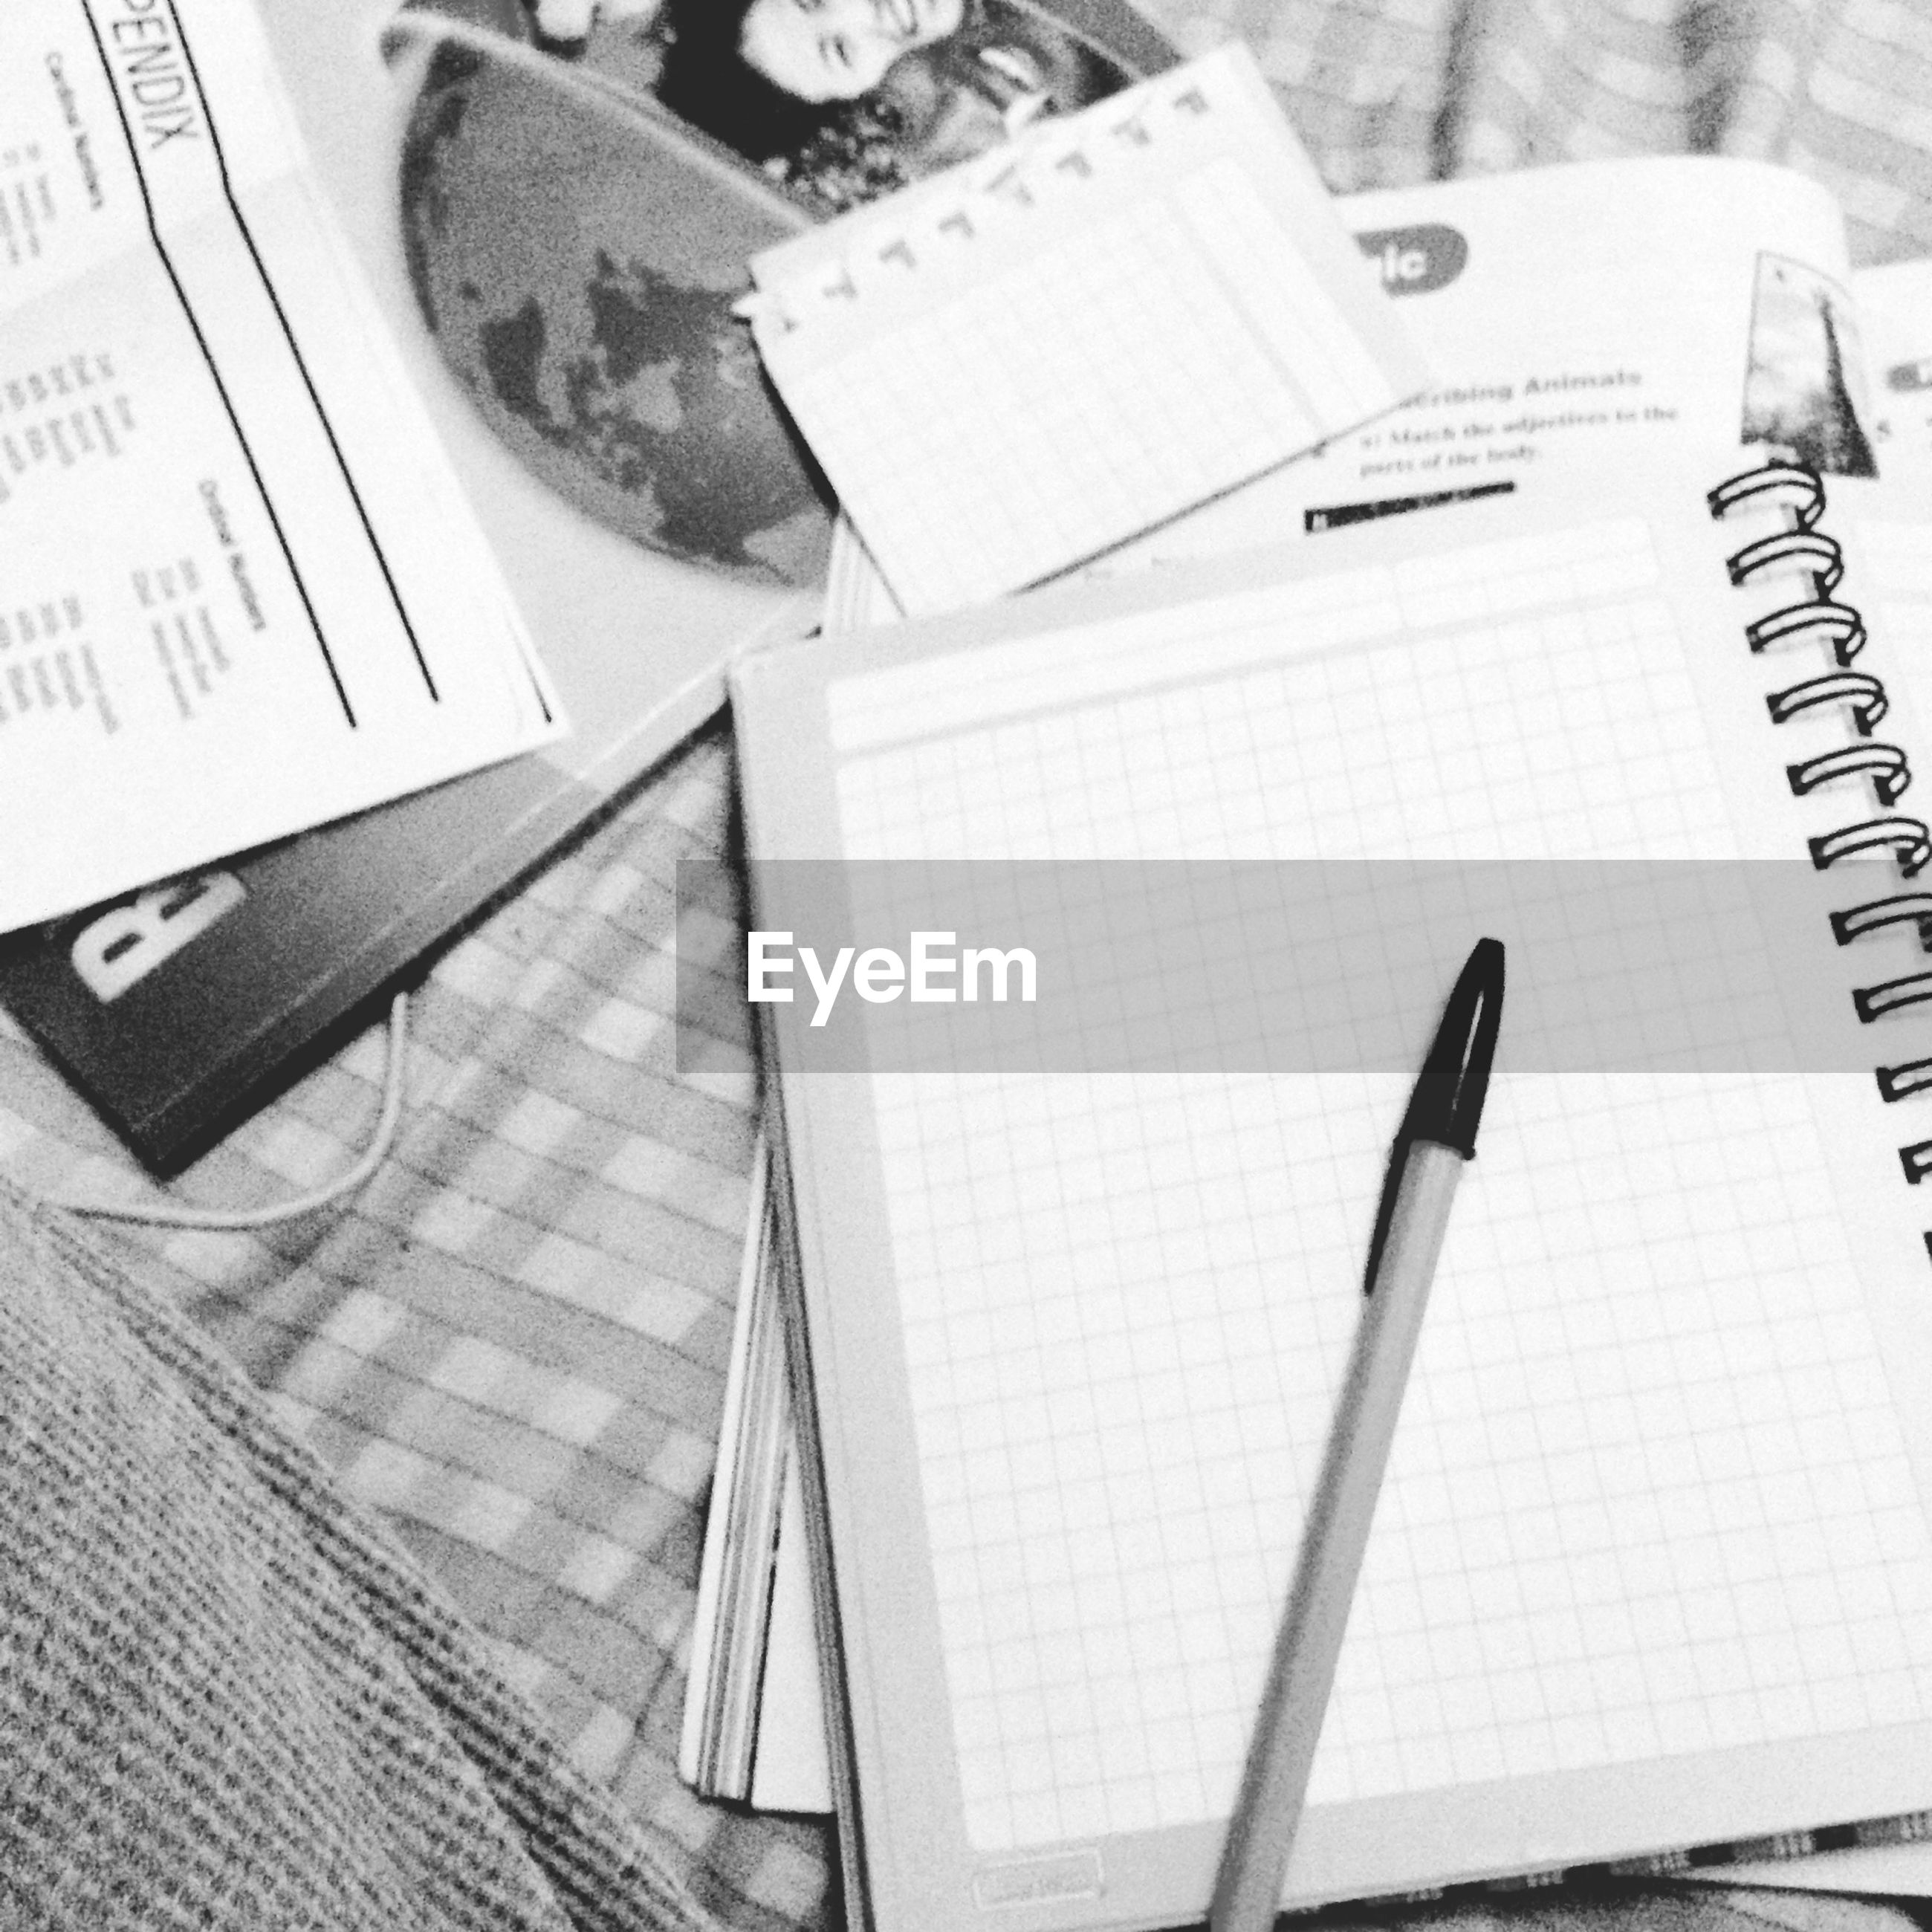 indoors, communication, book, high angle view, education, table, text, paper, technology, close-up, still life, pen, wireless technology, western script, page, no people, connection, document, arts culture and entertainment, wood - material